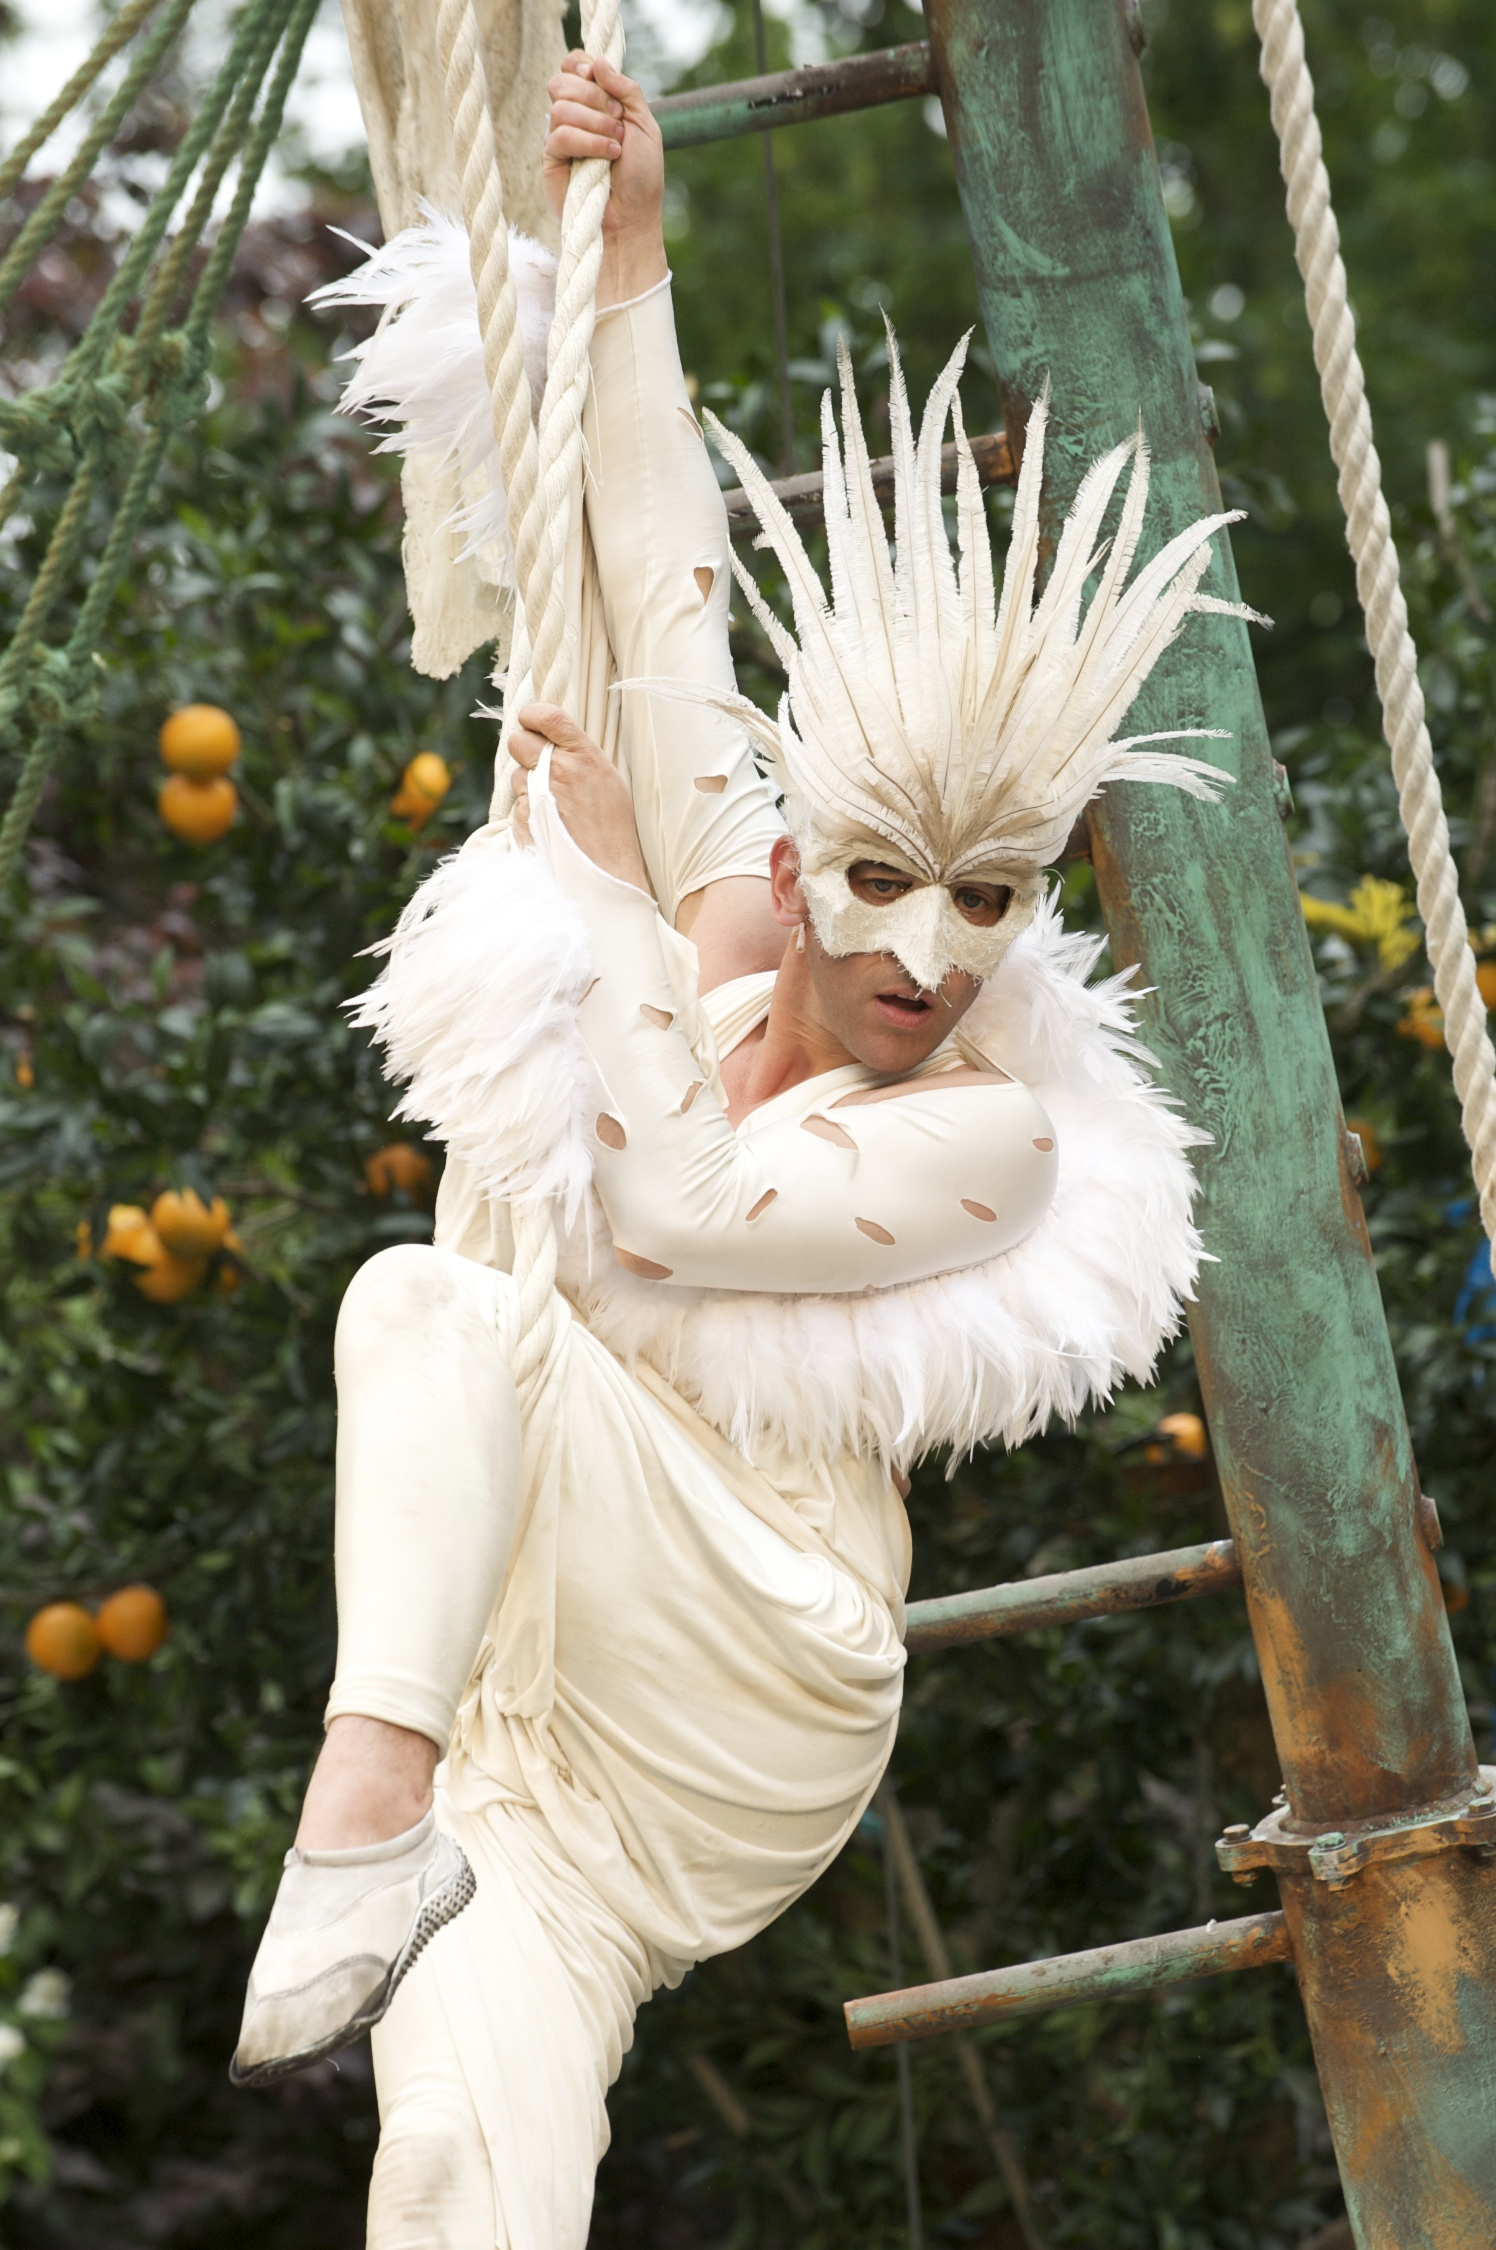 The Tempest - Regents Park Open Air Theatre, London UK